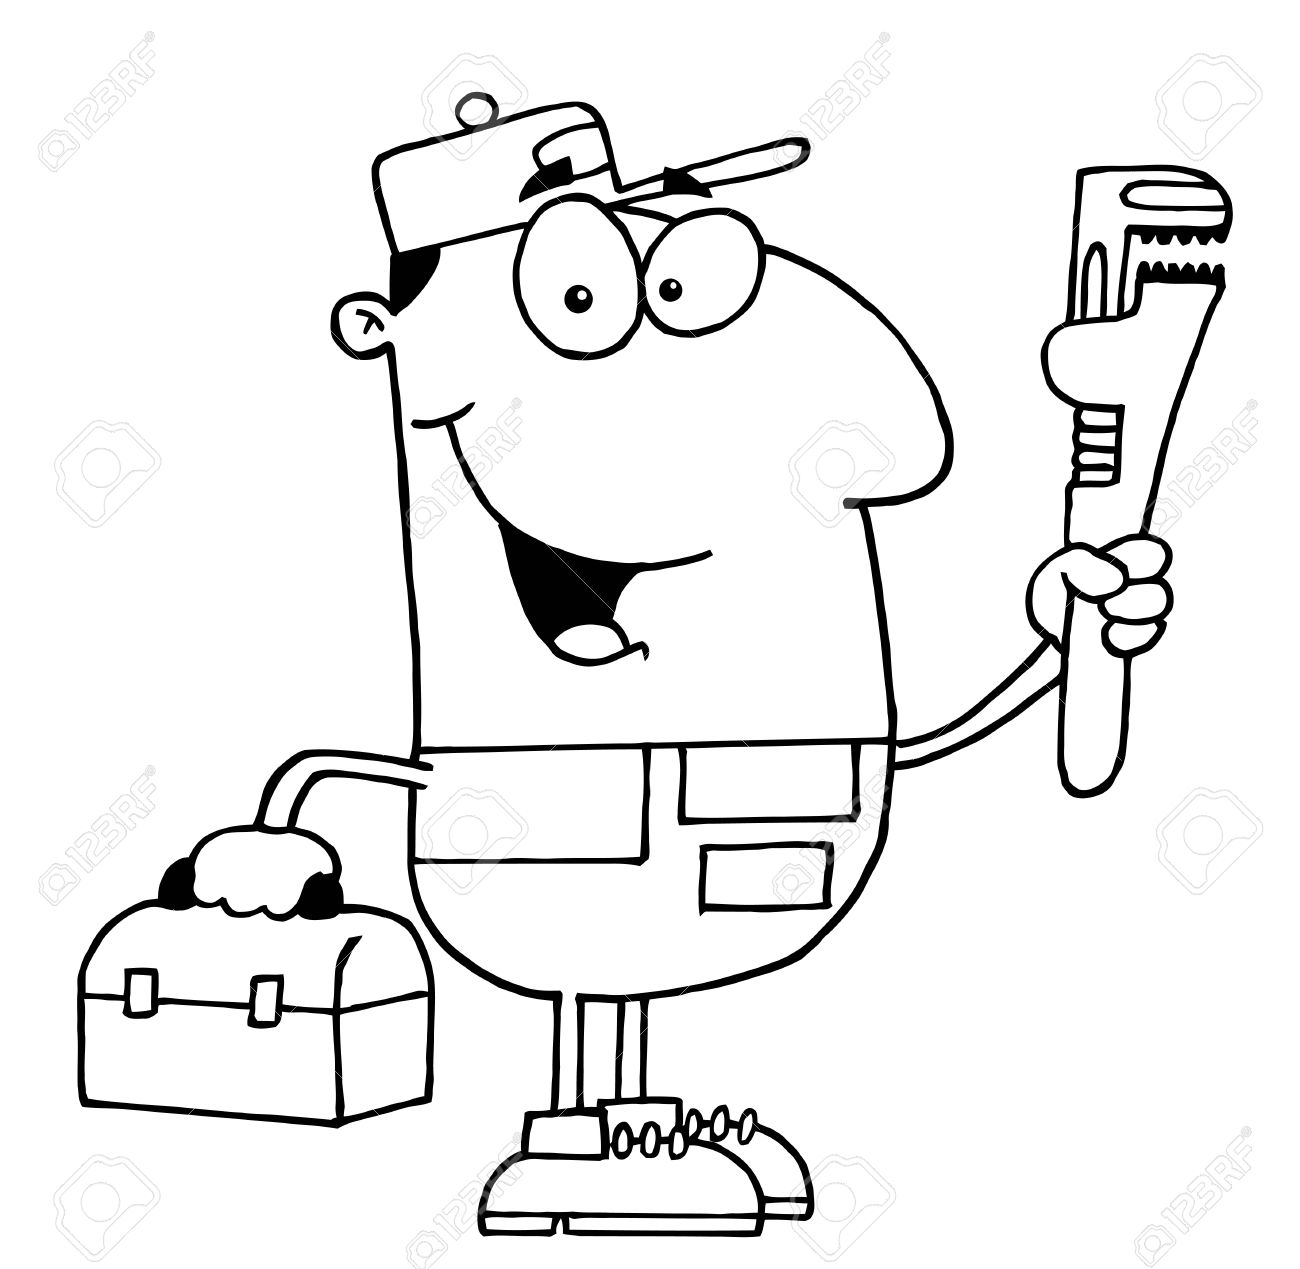 Plumbing cartoon clipart royalty free library Clipart Illustration Of An Outlined Plumber Royalty Free Cliparts ... royalty free library